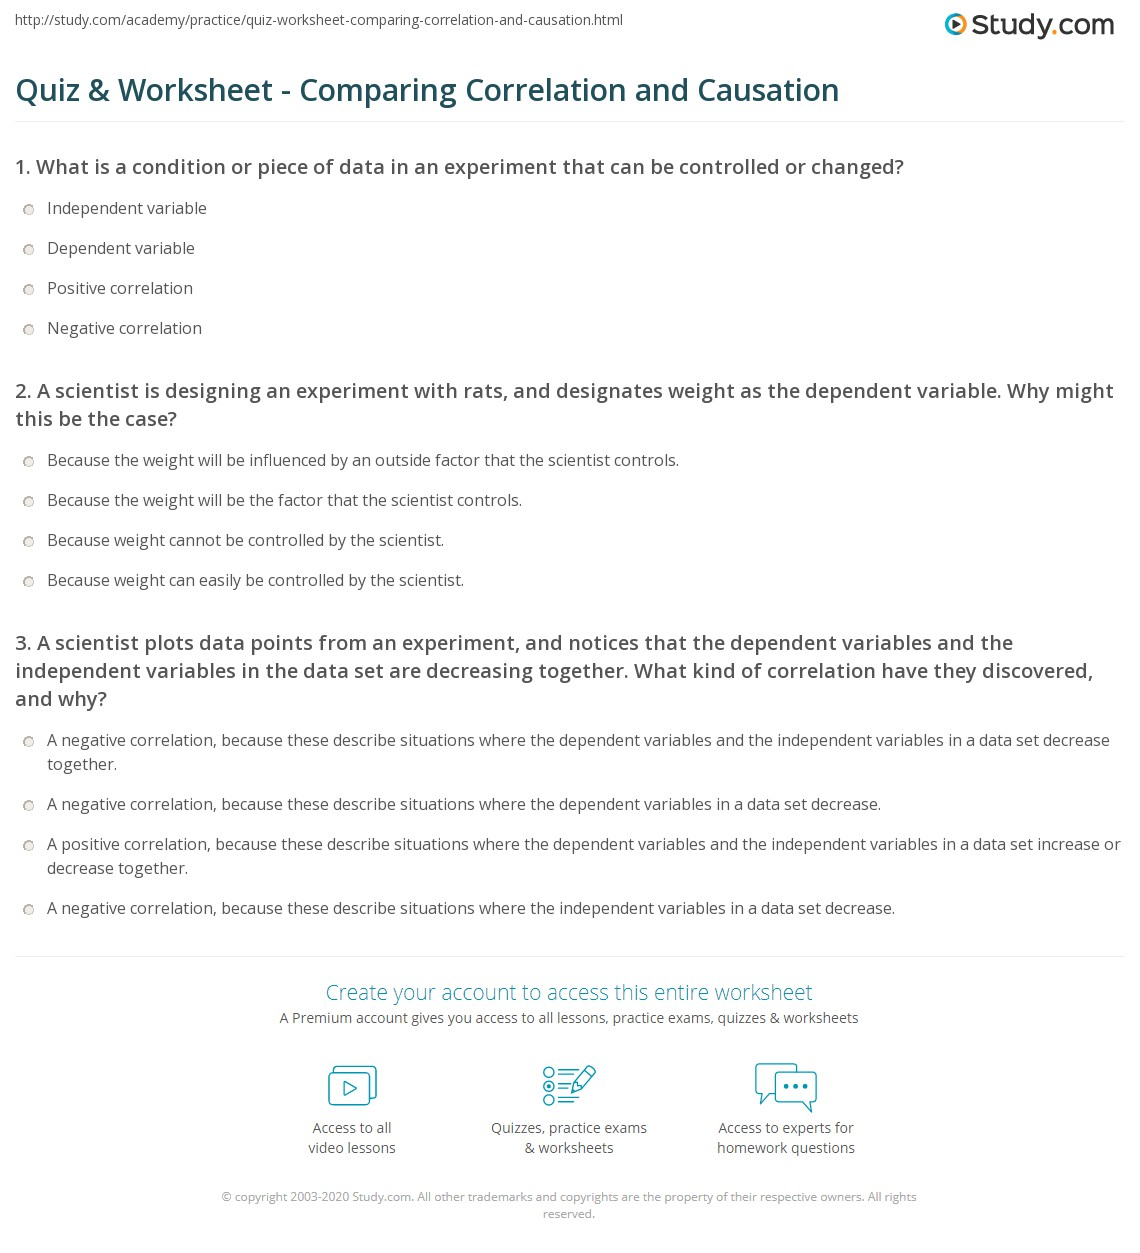 Aldiablosus  Pretty Quiz Amp Worksheet  Comparing Correlation And Causation  Studycom With Luxury Print Correlation Vs Causation Differences Amp Definition Worksheet With Delectable Ks Worksheets Maths Also Worksheets For Grade  Science In Addition Grade  Math Patterns Worksheets And Food Chain Worksheets For Kids As Well As Ncert Worksheets Additionally Free Maths Worksheets Year  From Studycom With Aldiablosus  Luxury Quiz Amp Worksheet  Comparing Correlation And Causation  Studycom With Delectable Print Correlation Vs Causation Differences Amp Definition Worksheet And Pretty Ks Worksheets Maths Also Worksheets For Grade  Science In Addition Grade  Math Patterns Worksheets From Studycom